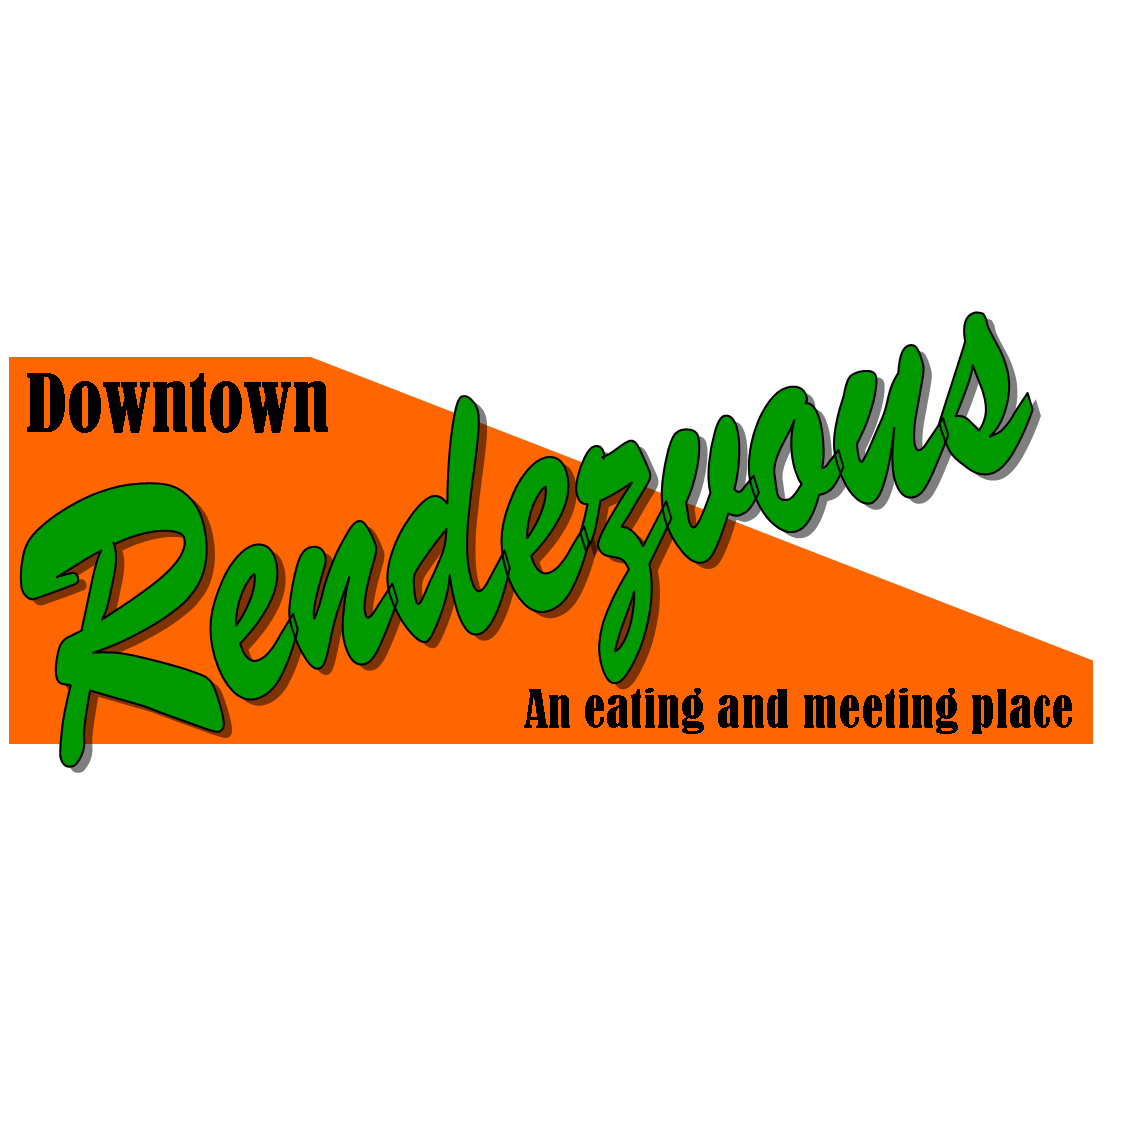 Downtown Rendezvous image 5